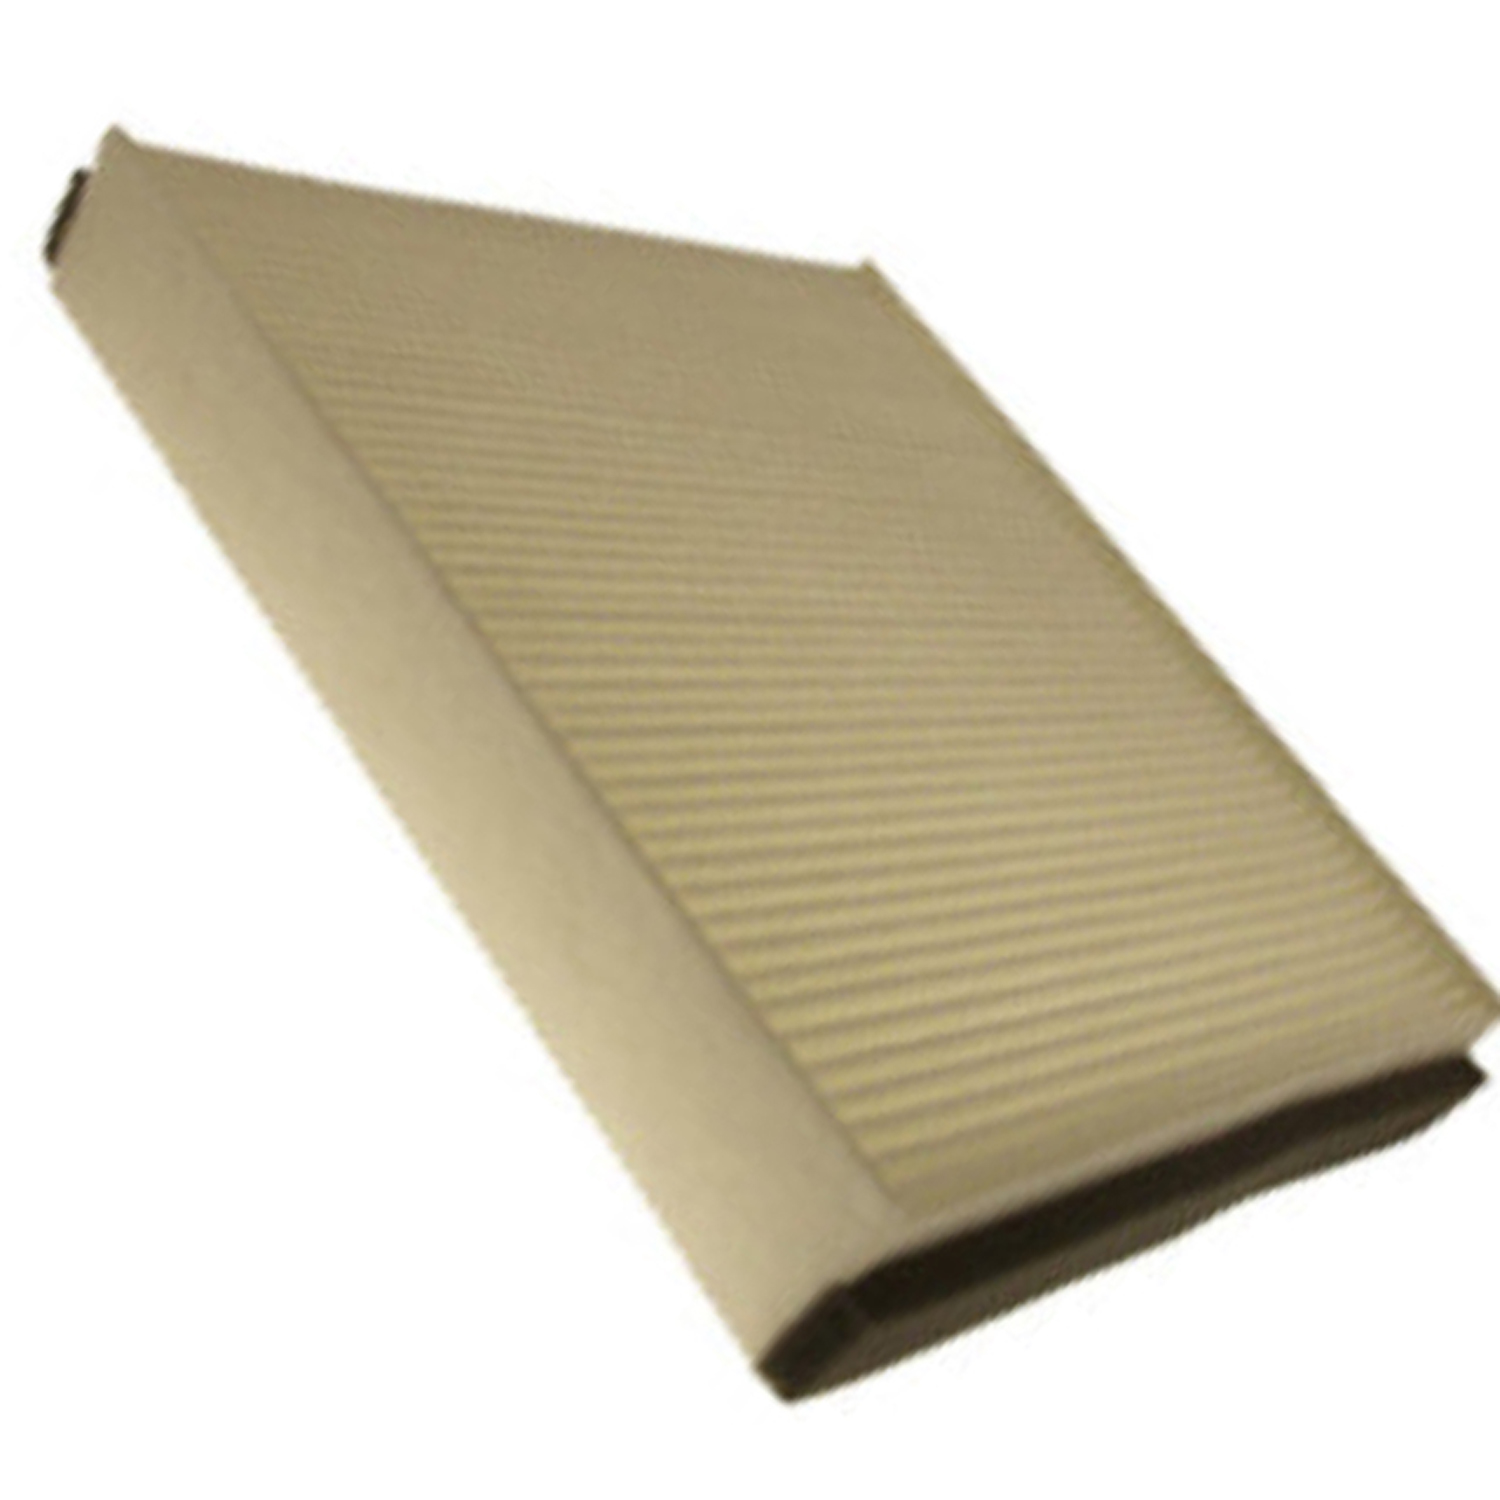 Particulate Cabin Air Filter VOLV C70-T5 2.5 07-06